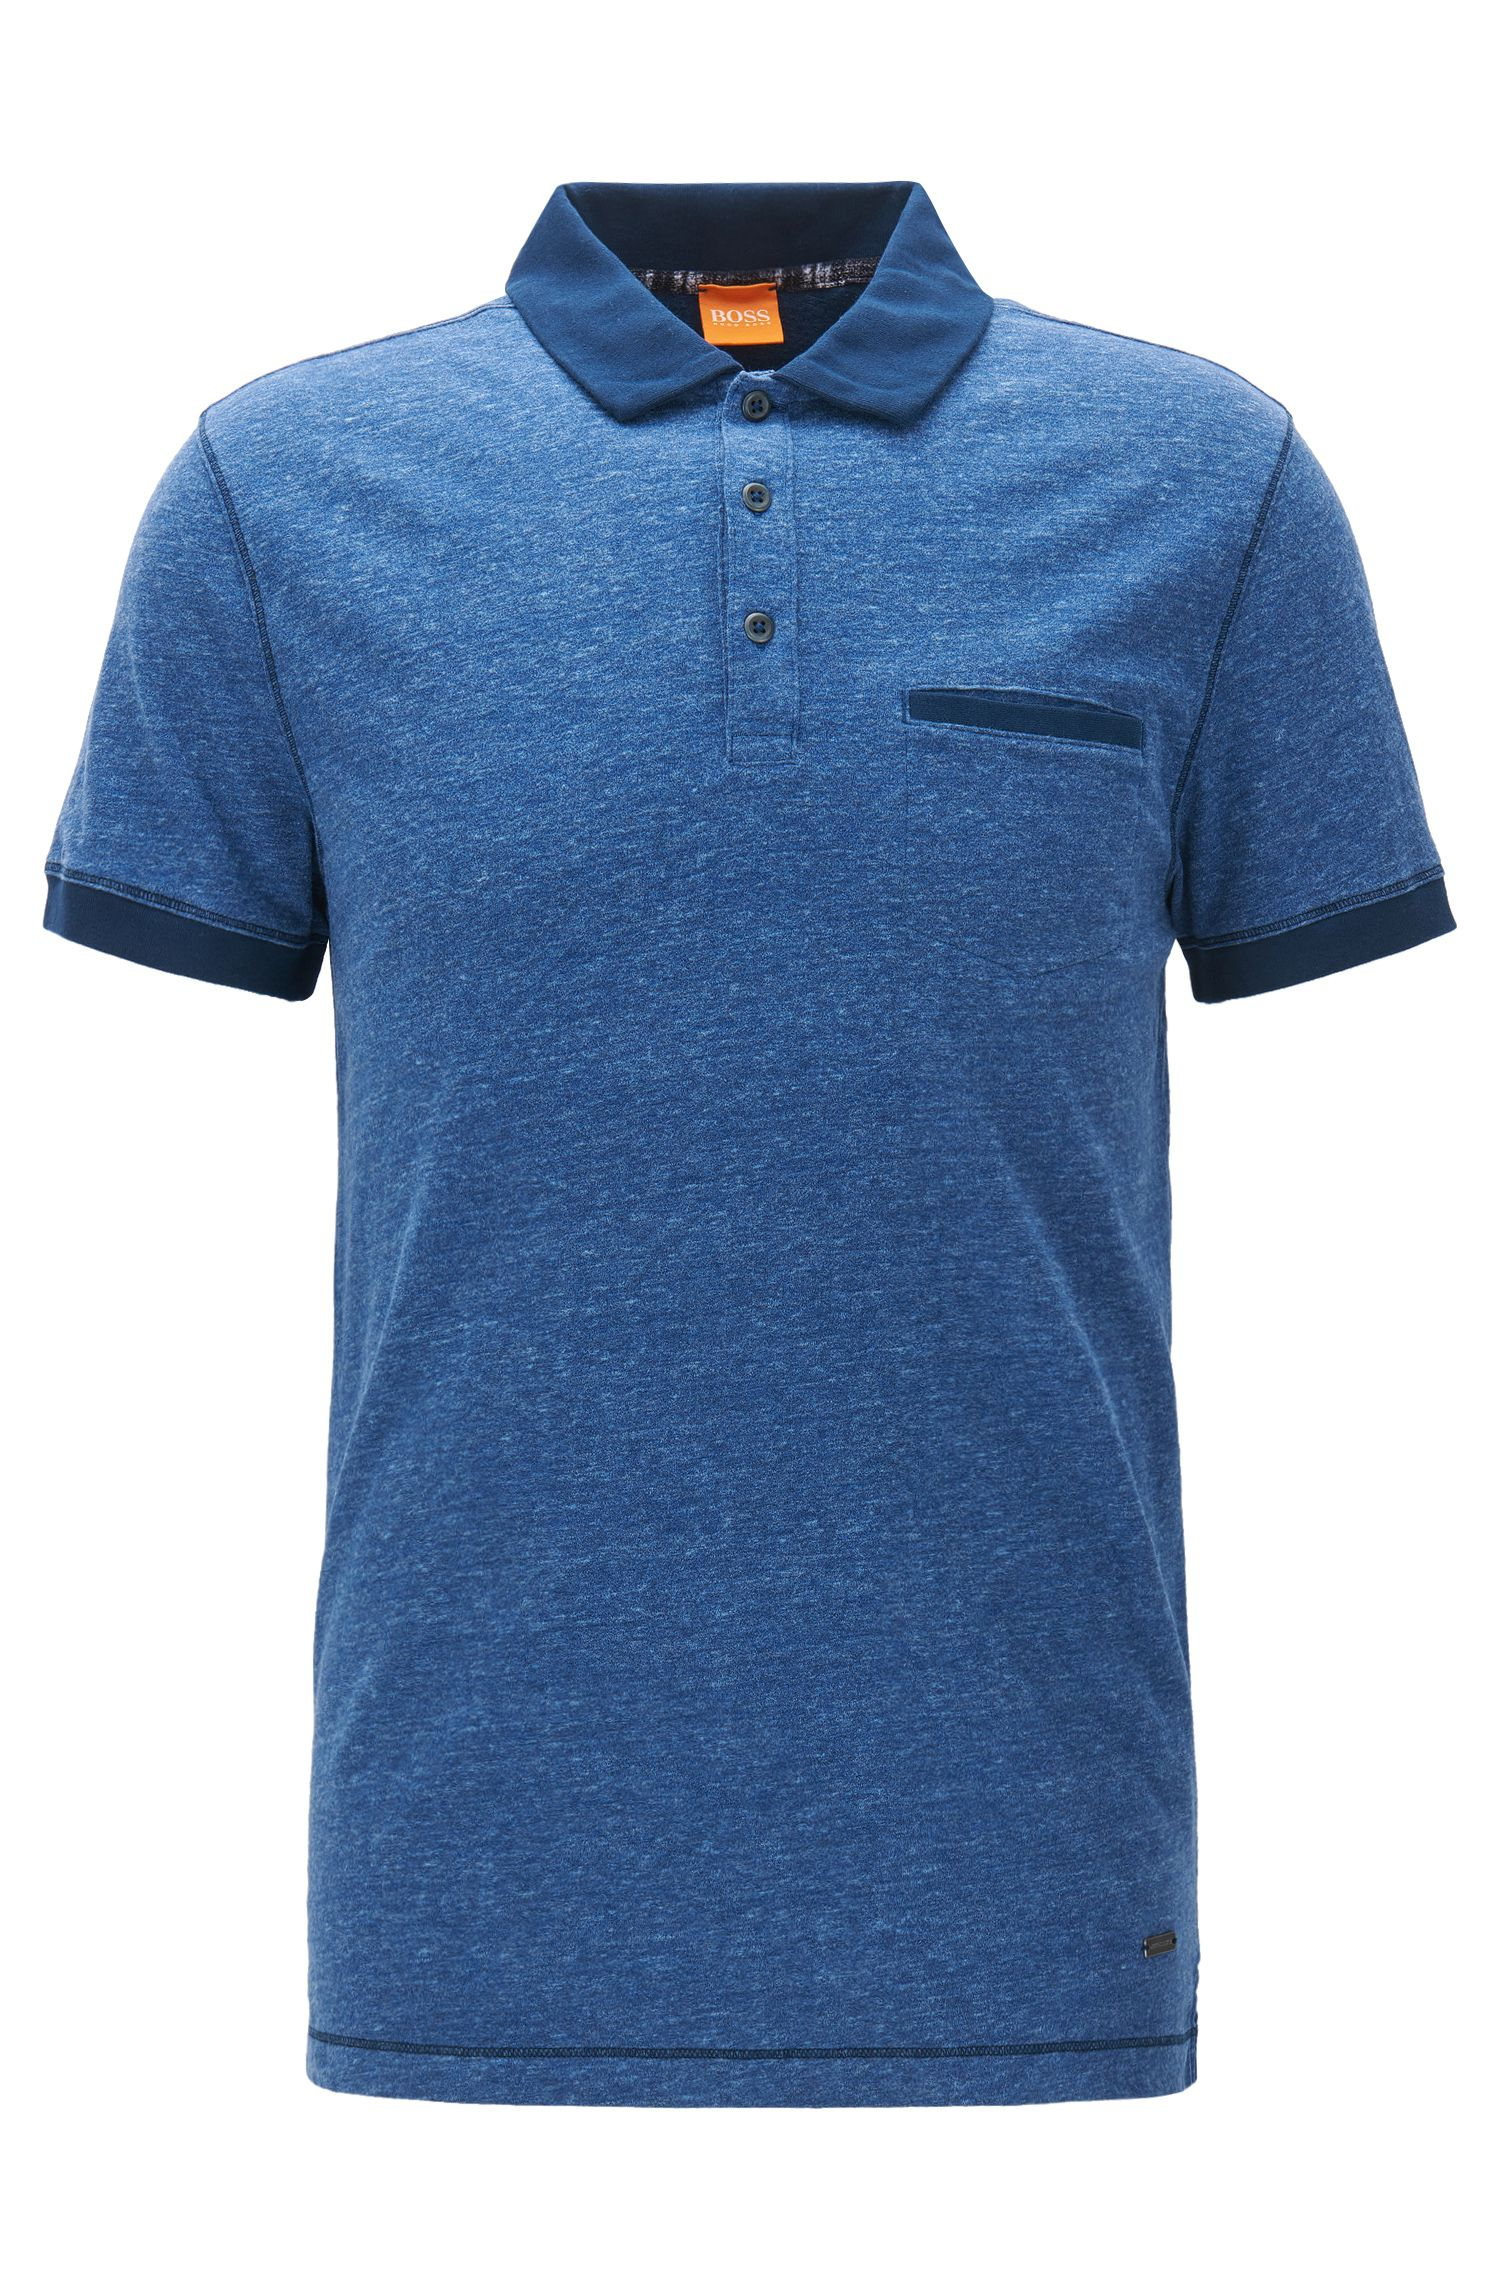 Regular-fit polo shirt in heathered jersey